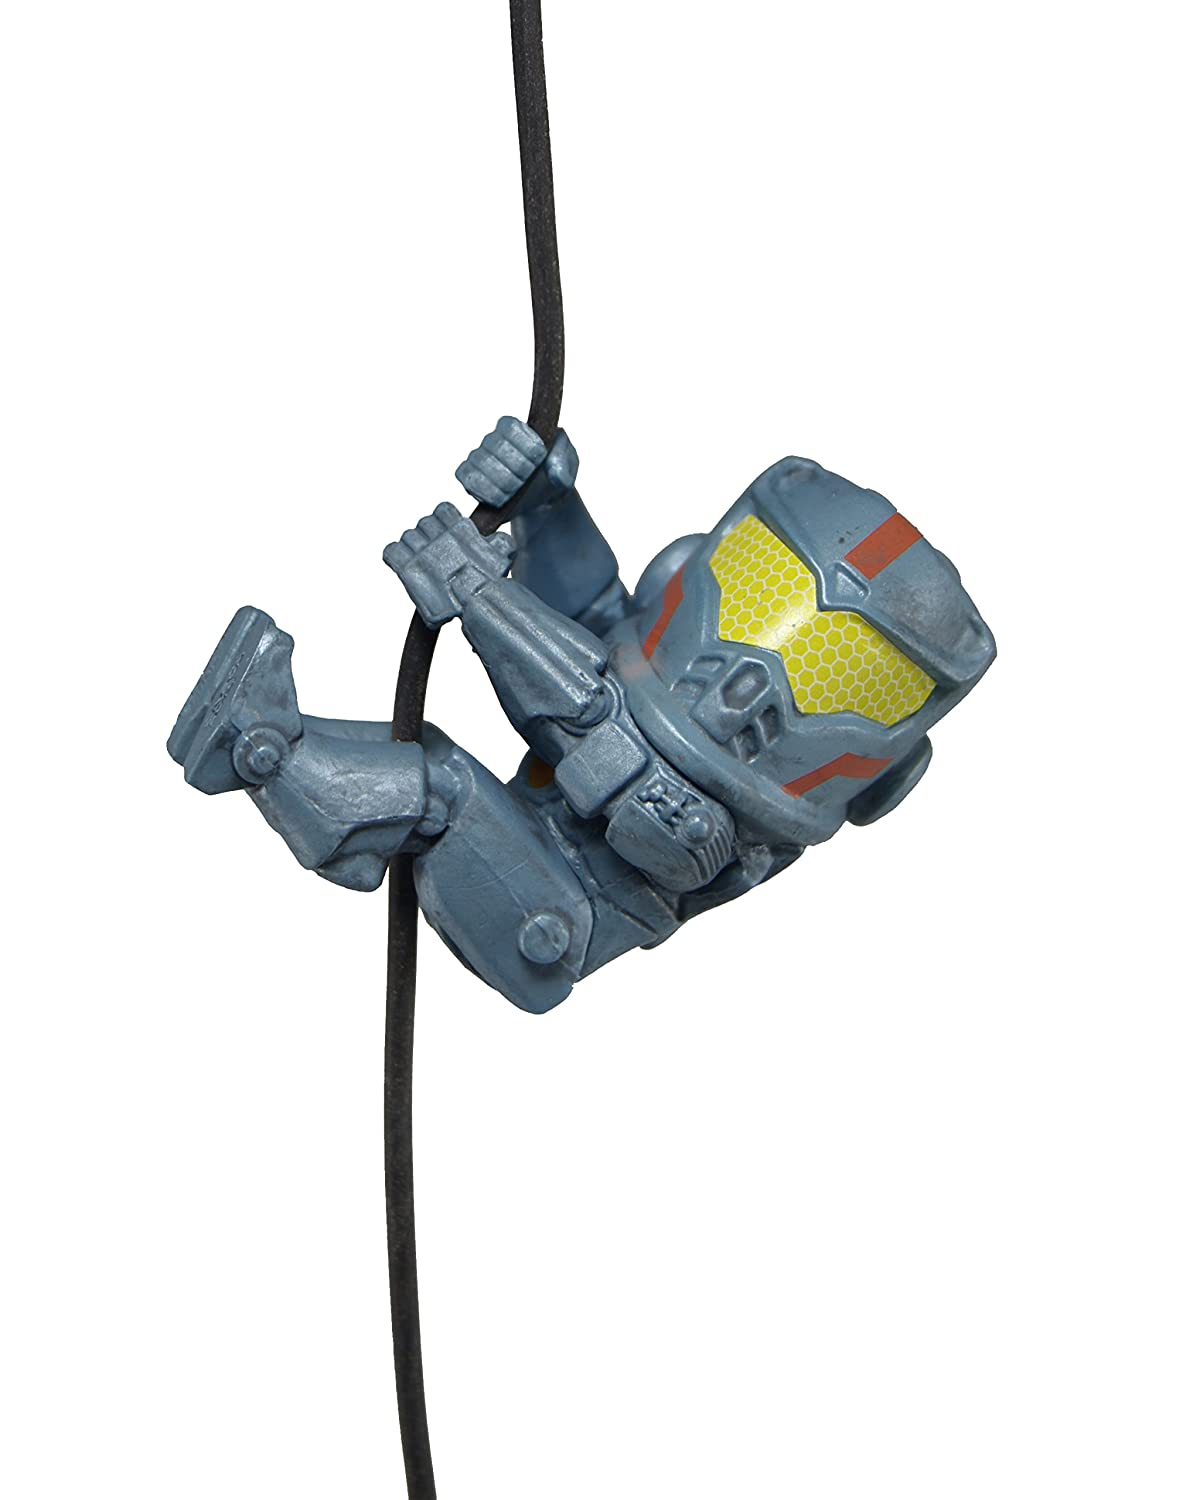 NECA Scalers 2 Characters Wave 3 Gypsy Danger Figure